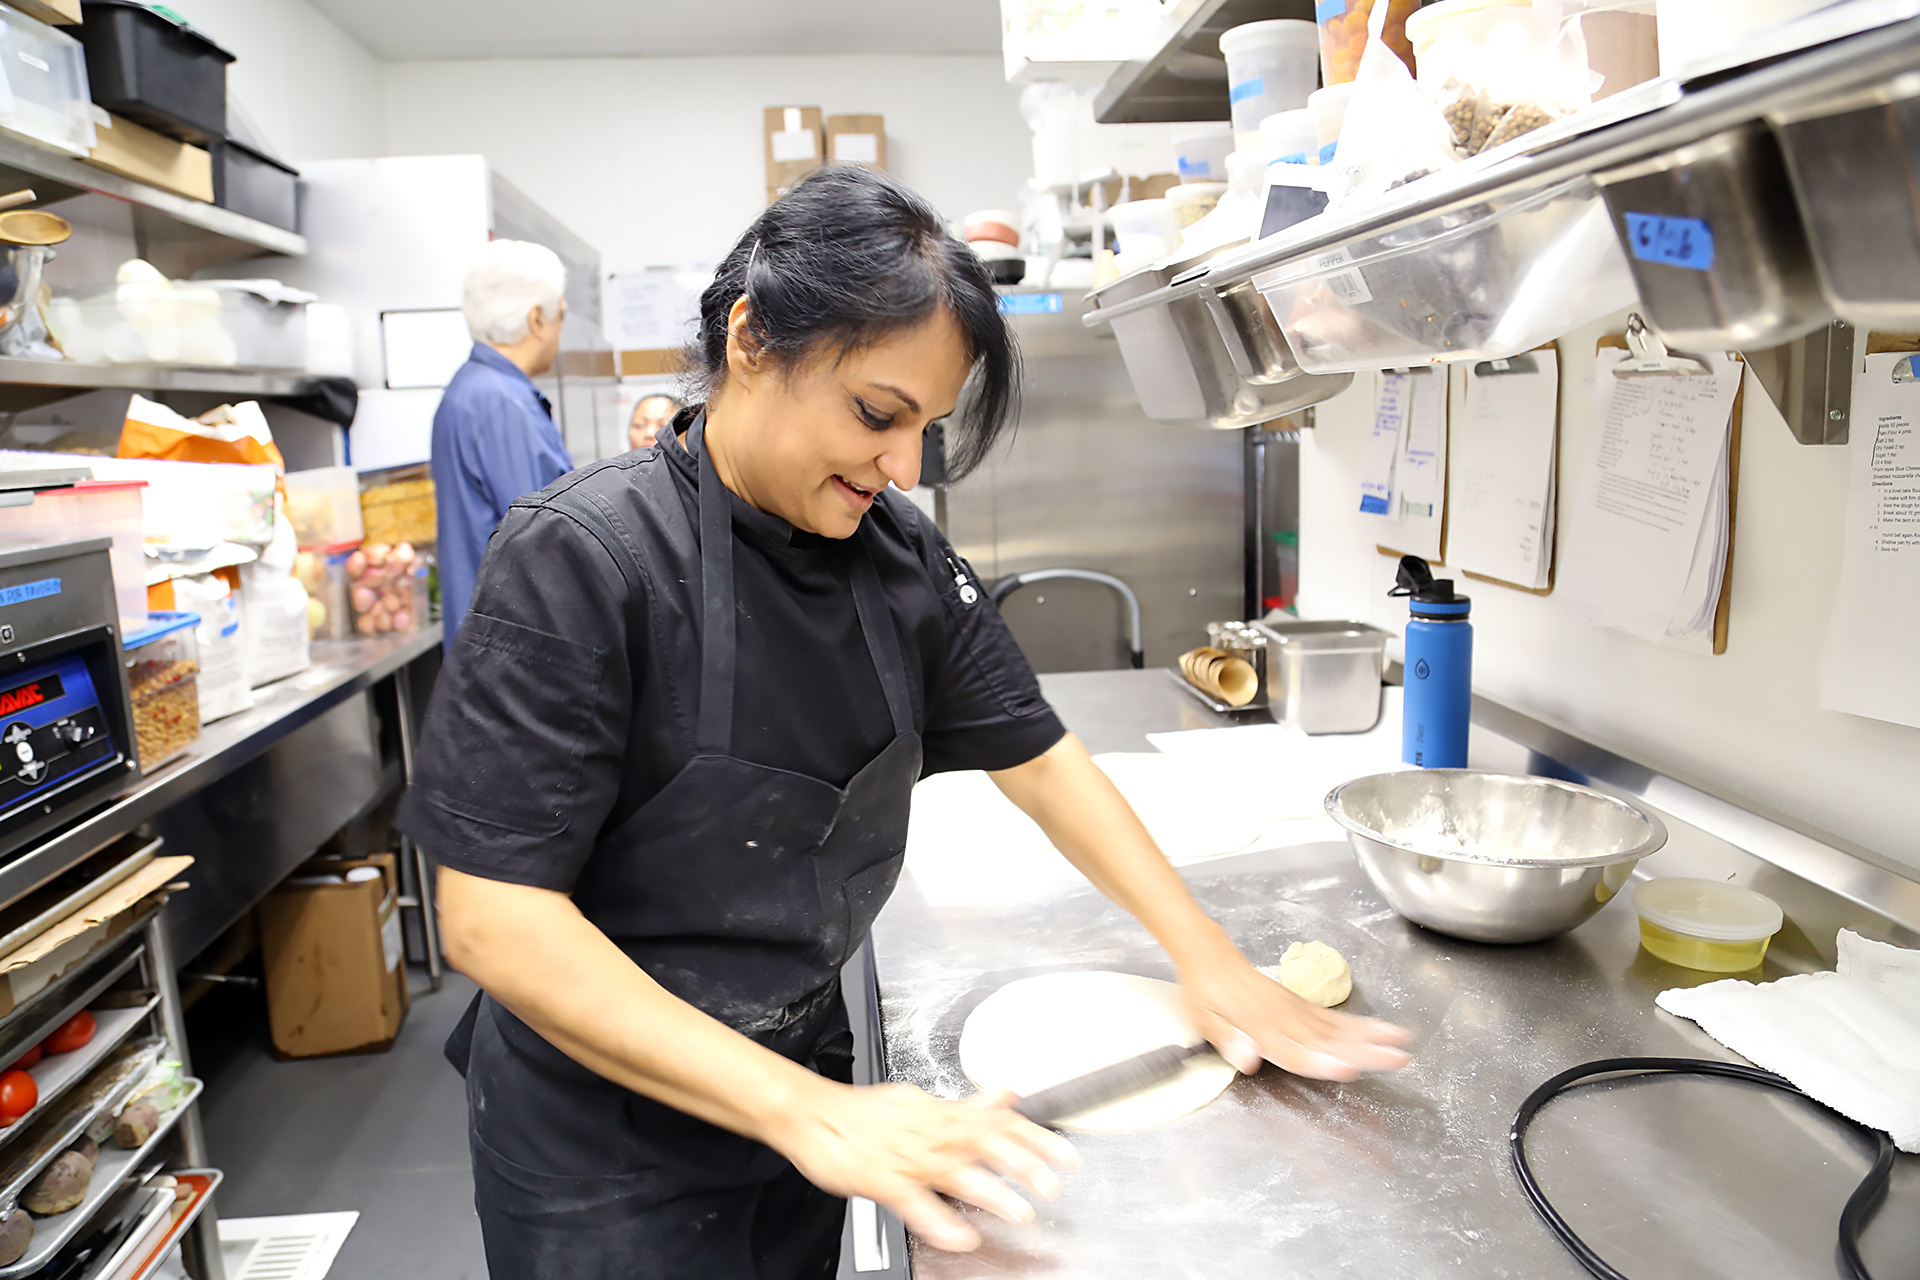 Heena Patel rolls dough for flatbread in back kitchen.